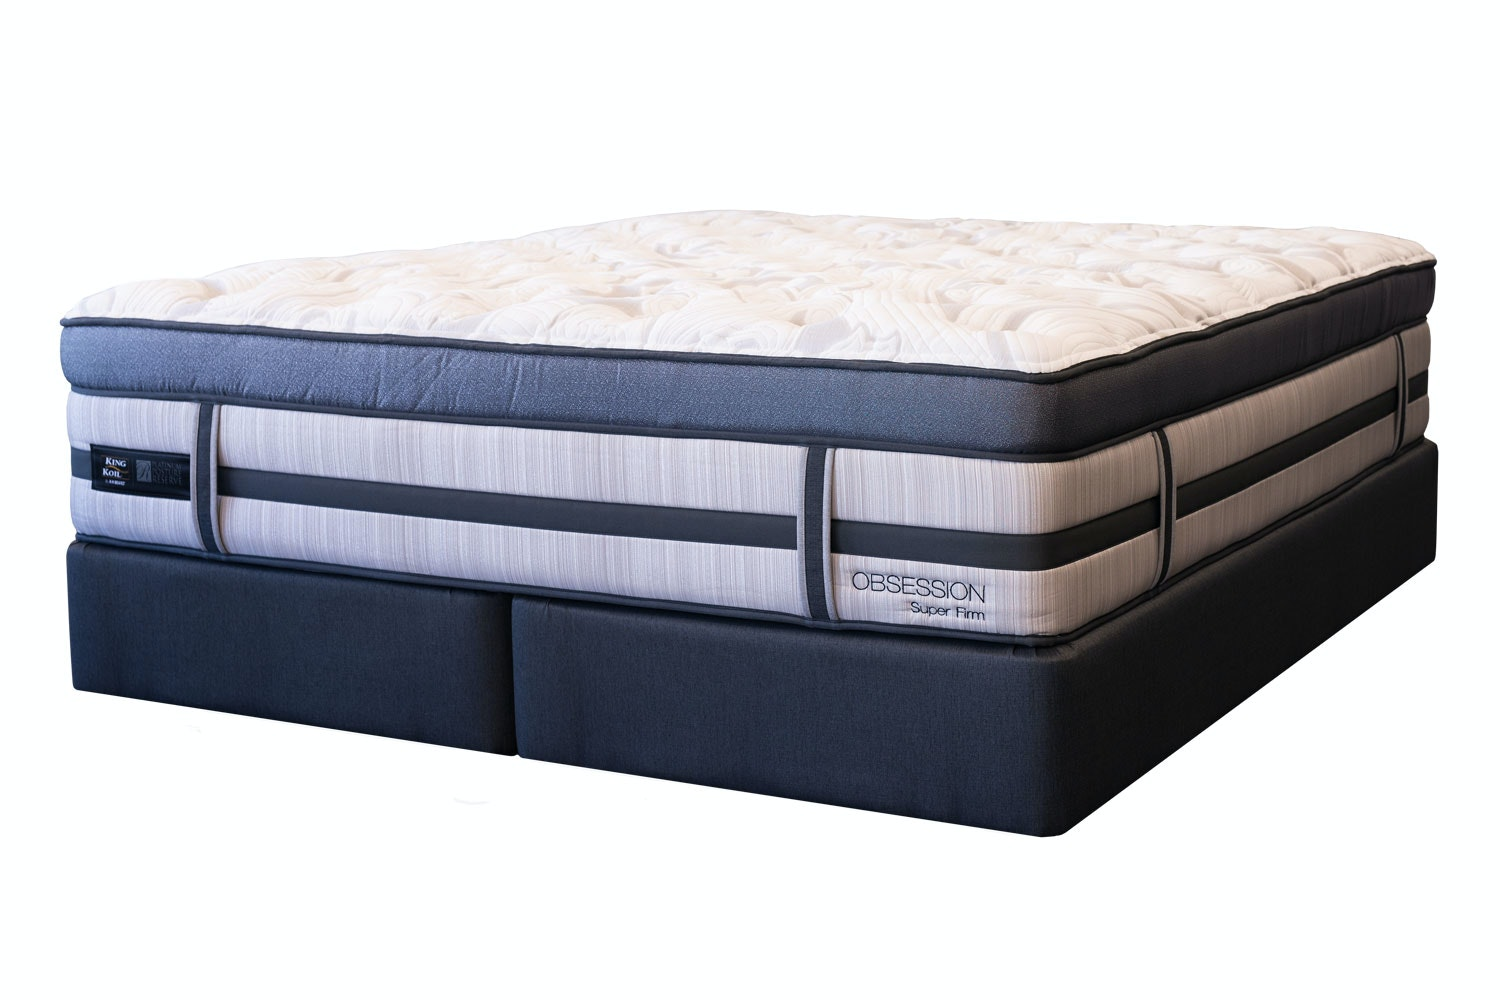 Obsession Super Firm Super King Bed by King Koil